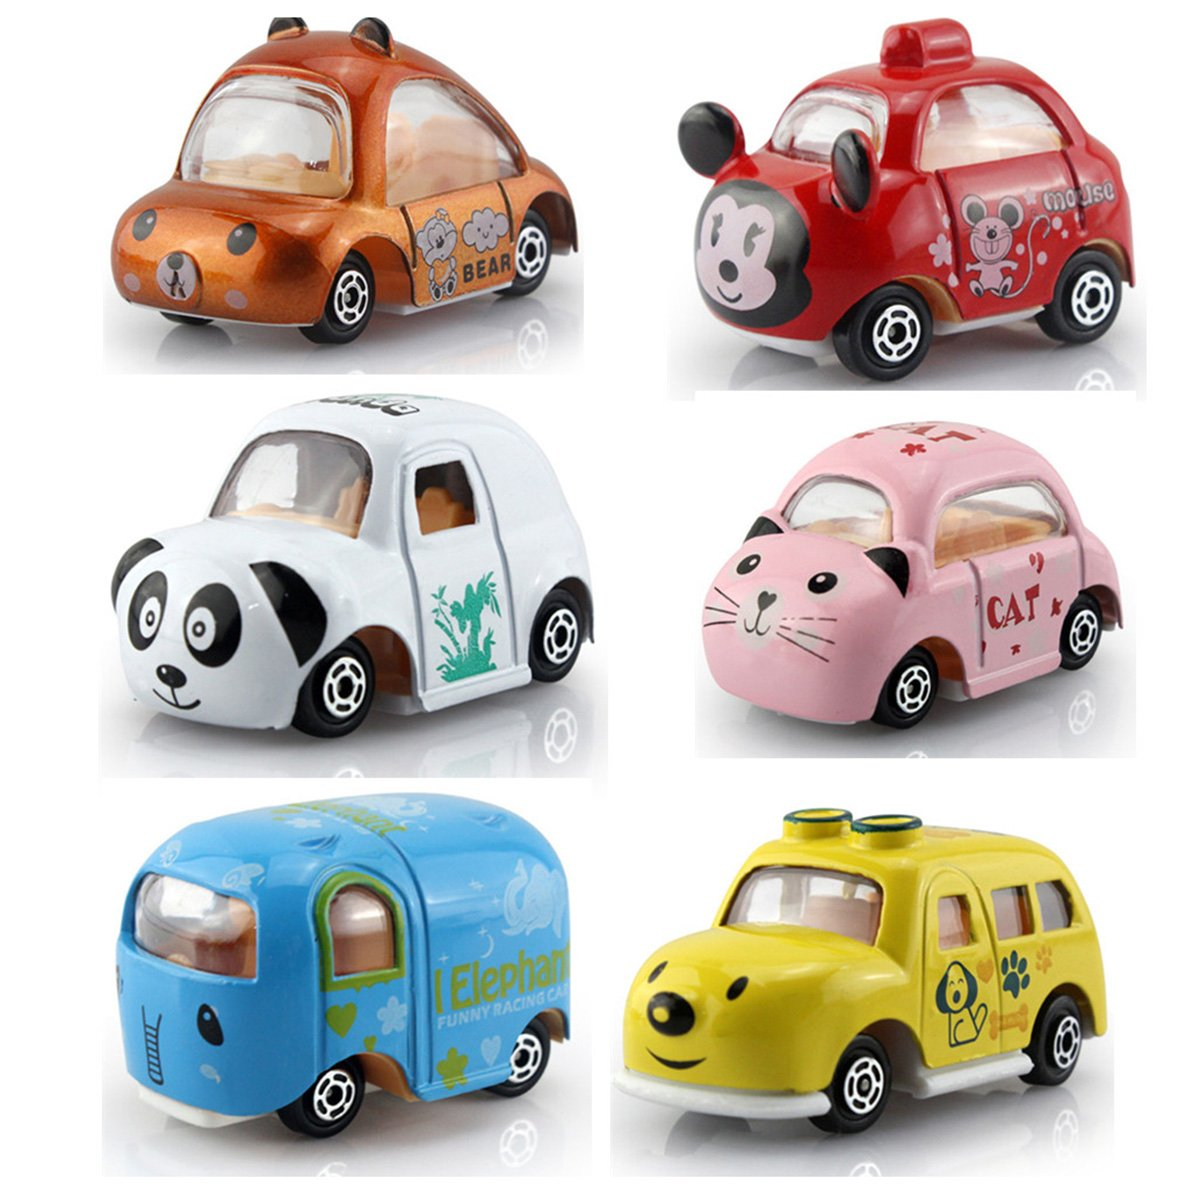 OKOK 6 Pack Mini Pull Back Cars Toy Alloy Die cast Vehicles Playset Carton Animal Mini Truck Toy Pull Back and Go Pull Back Car Set for Kids